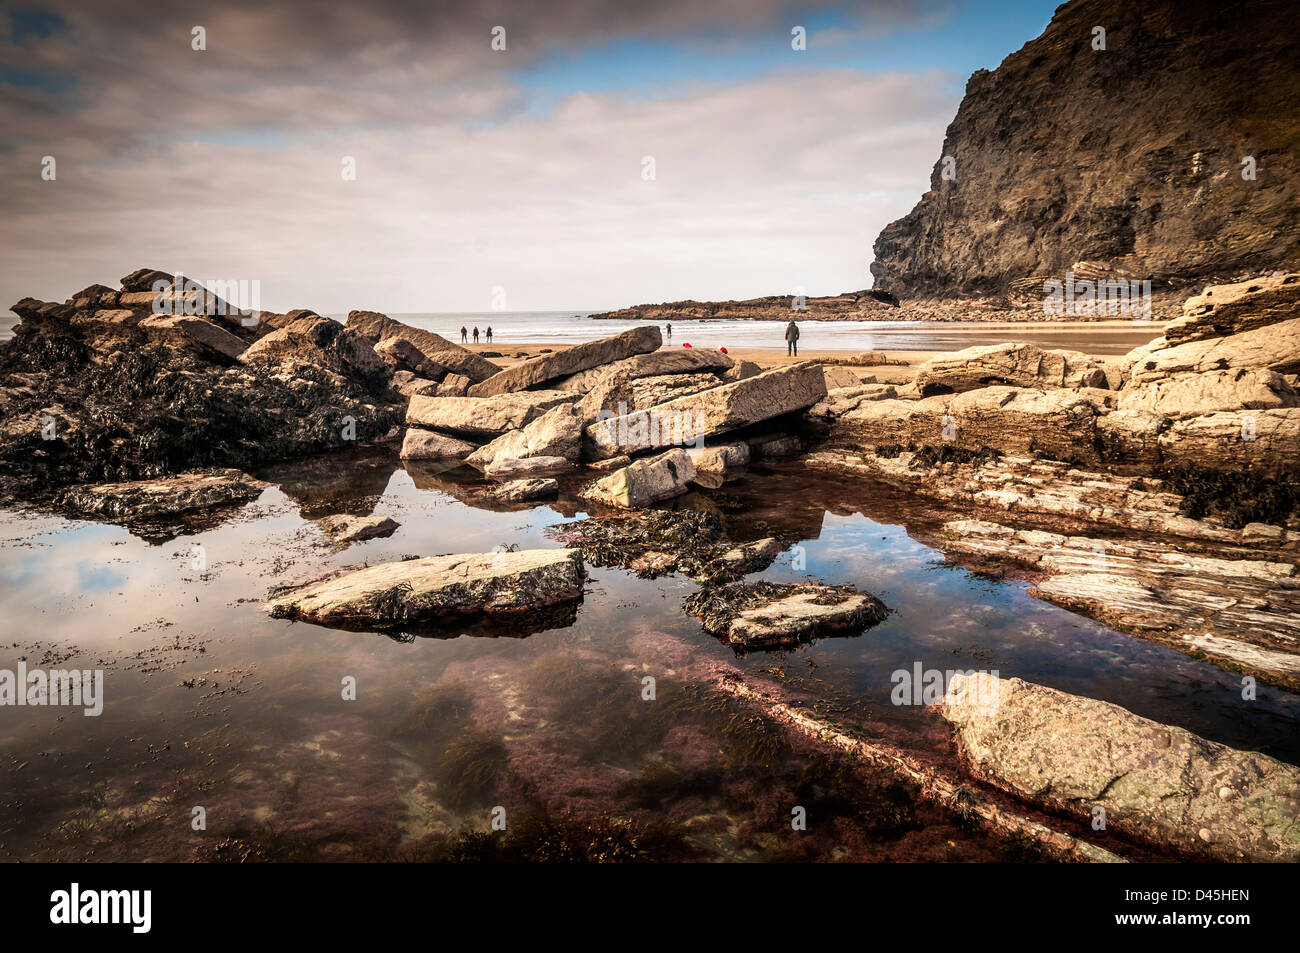 rock pool at crackington haven beach,cornwall - Stock Image